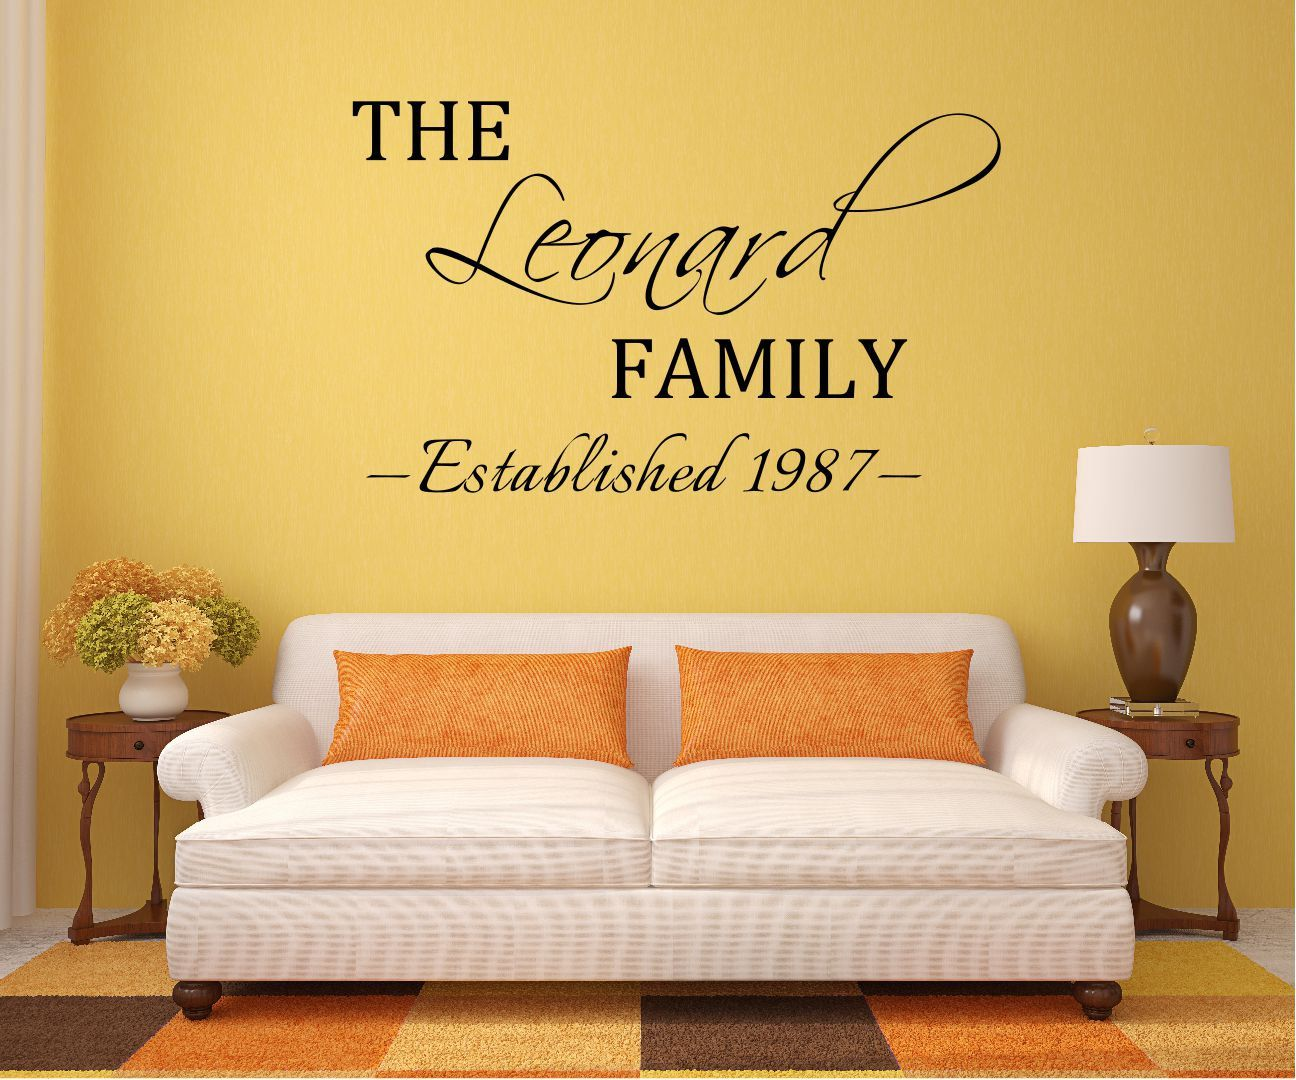 Custom Family Name Vinyl Decal - Family Vinyl Wall Art Decal, Family ...